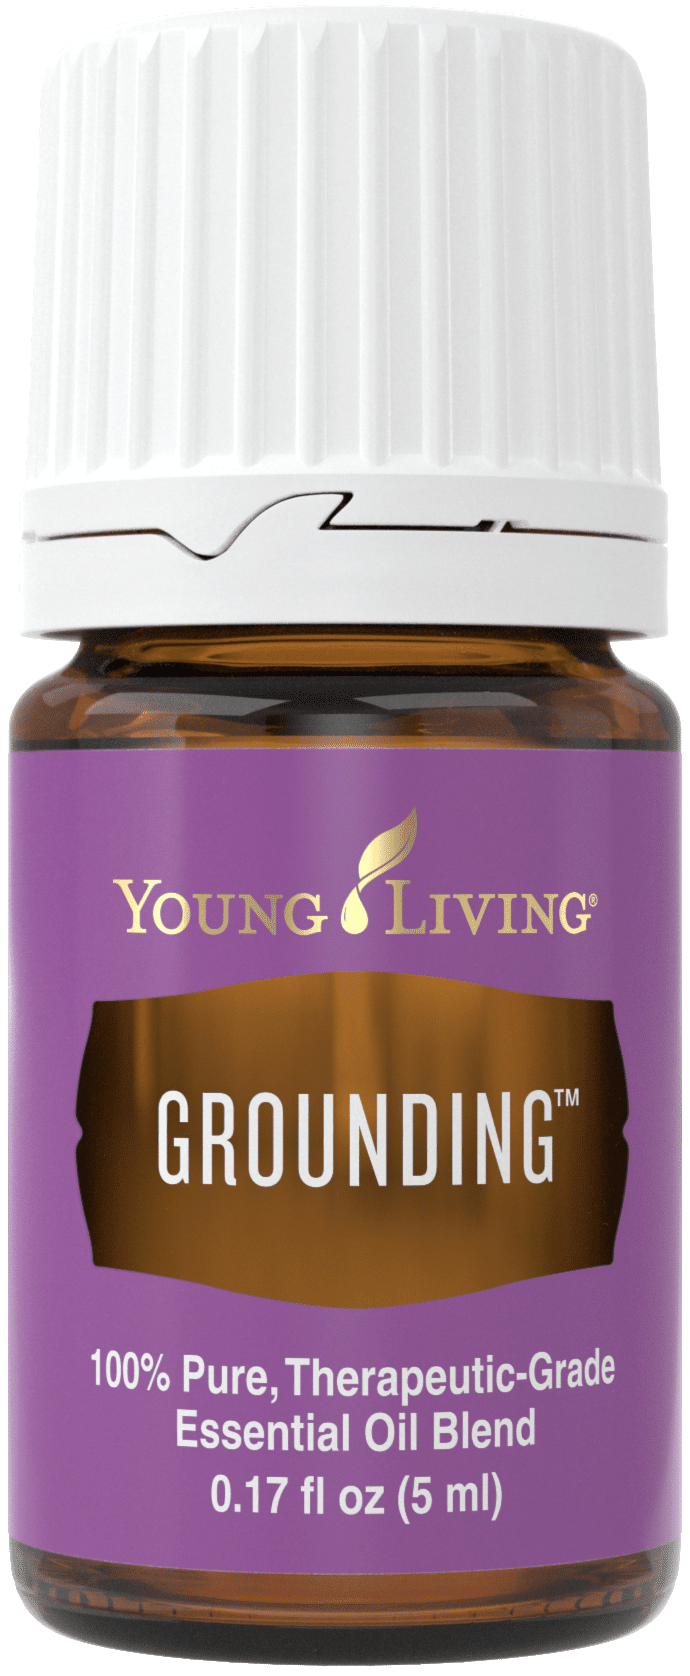 grounding essential oil